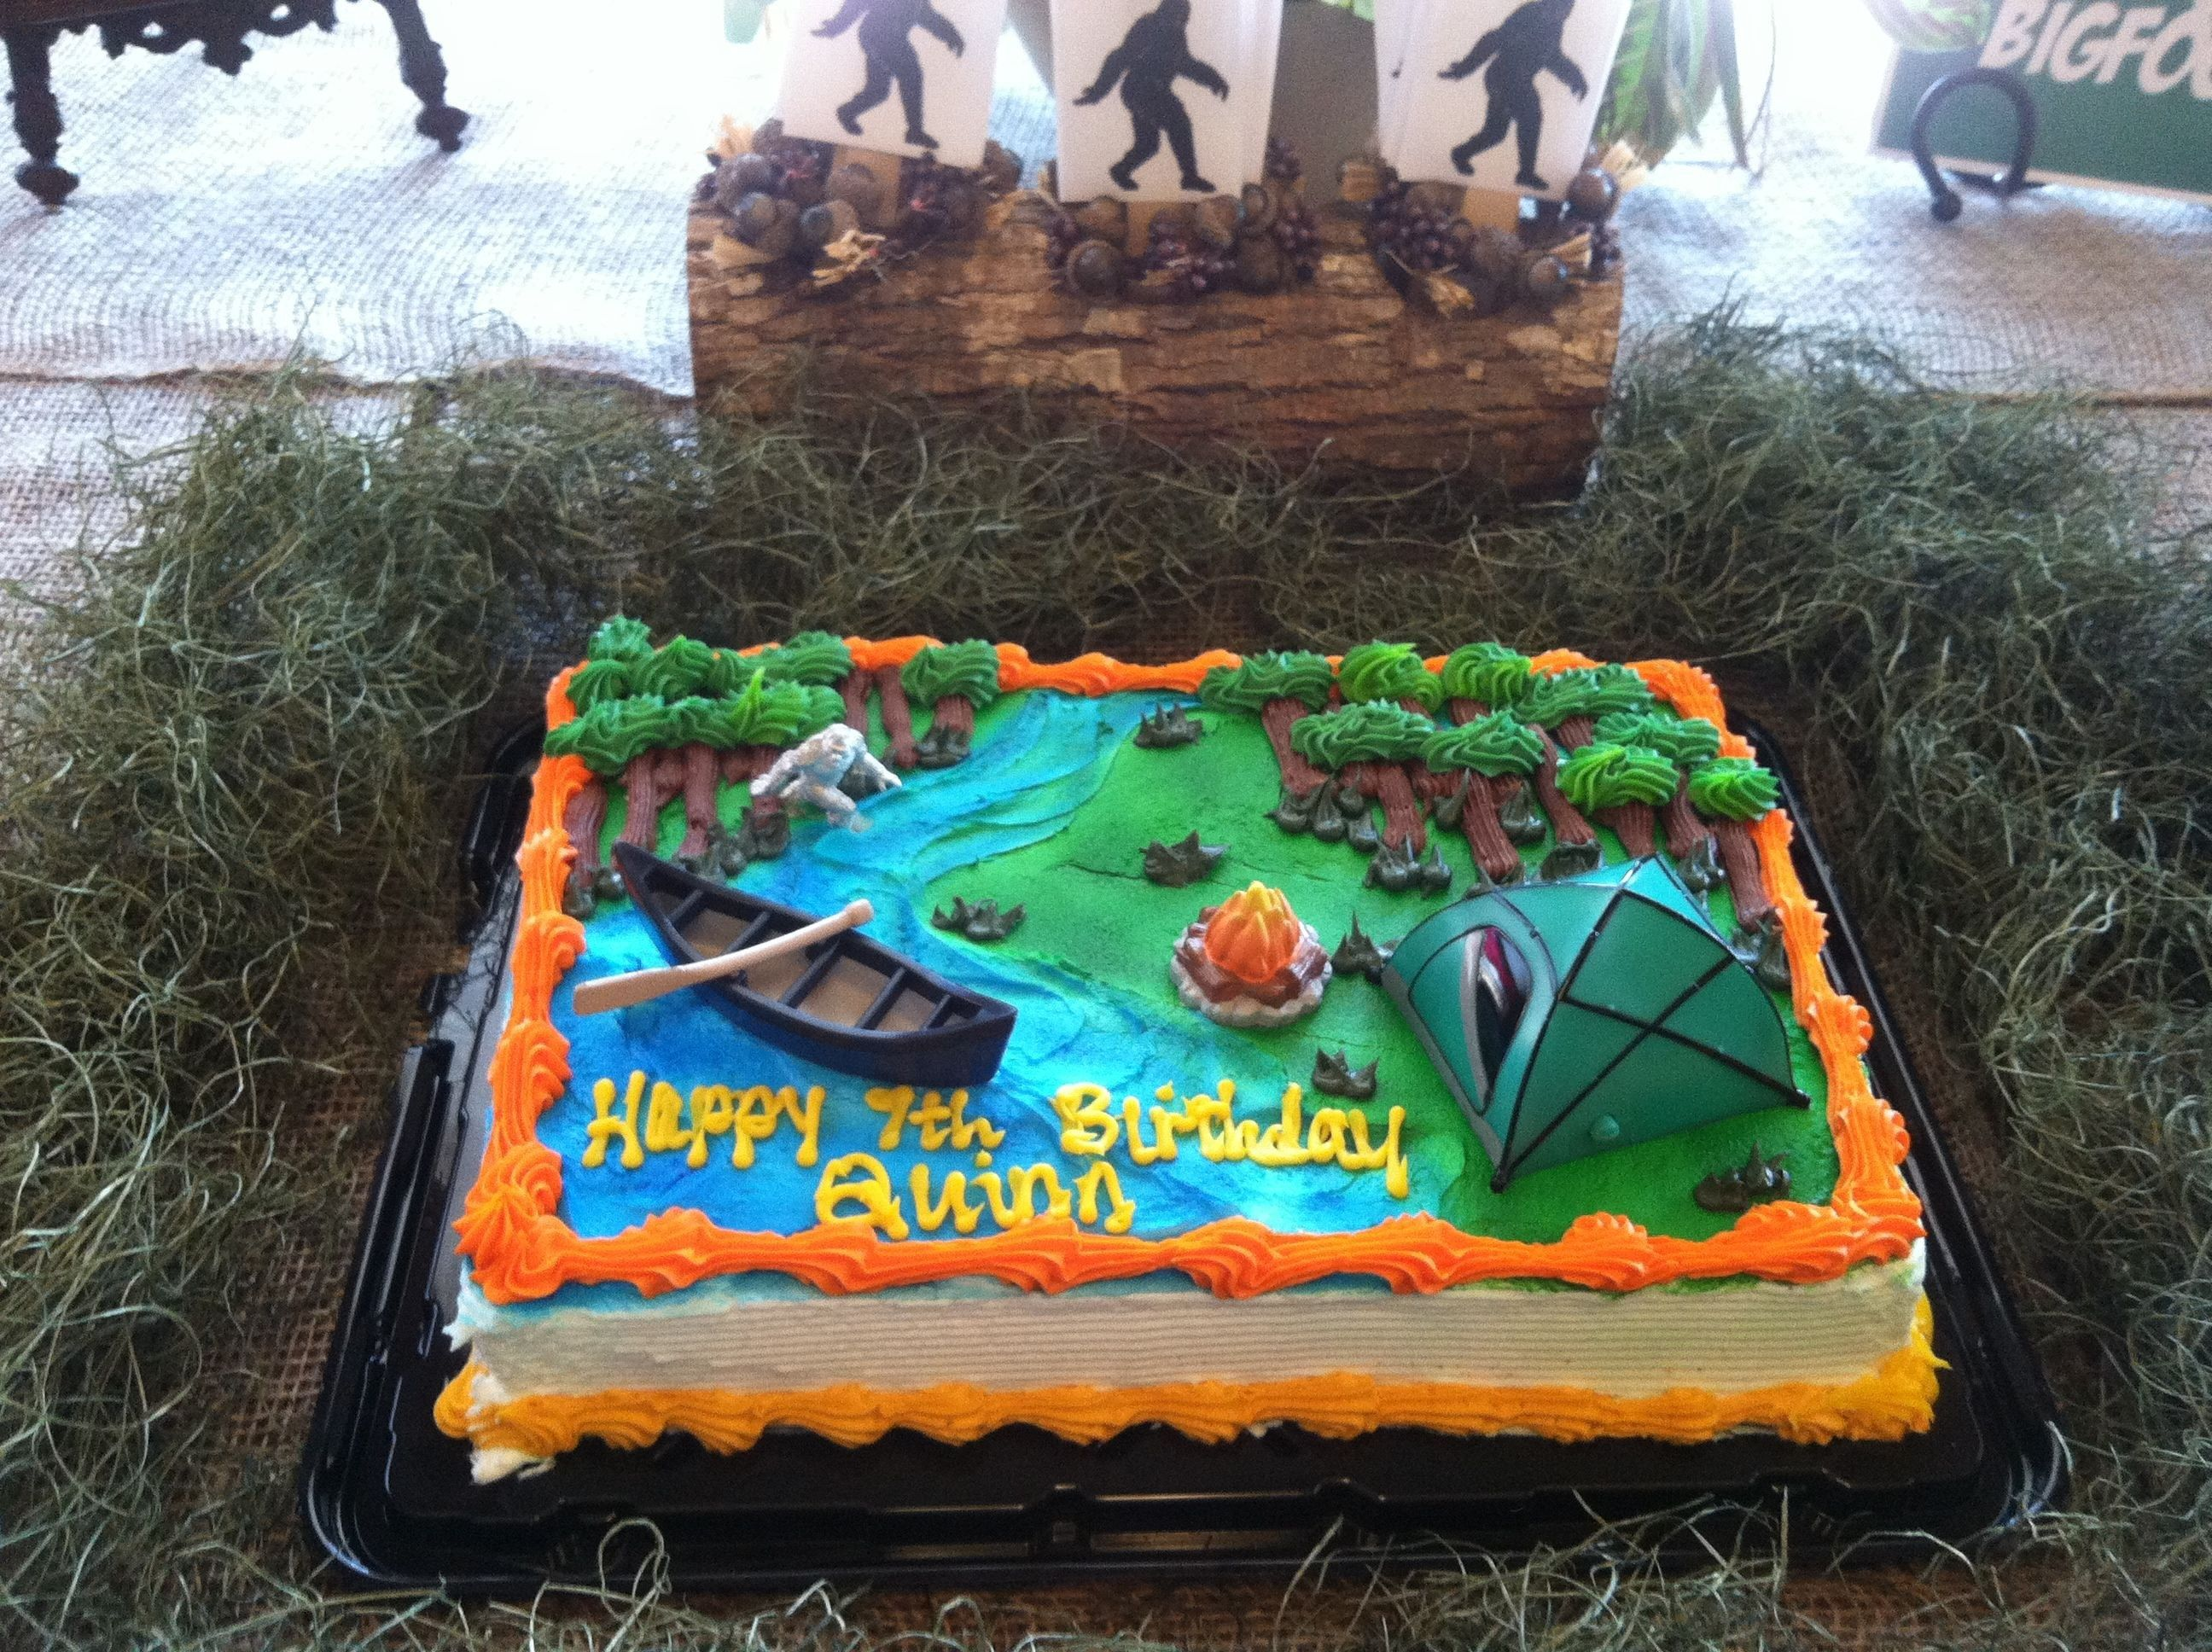 25 Creative Picture Of Kroger Bakery Birthday Cakes Yes Its Hard To Find A Bigfoot Cake At Your Local Bakerybut